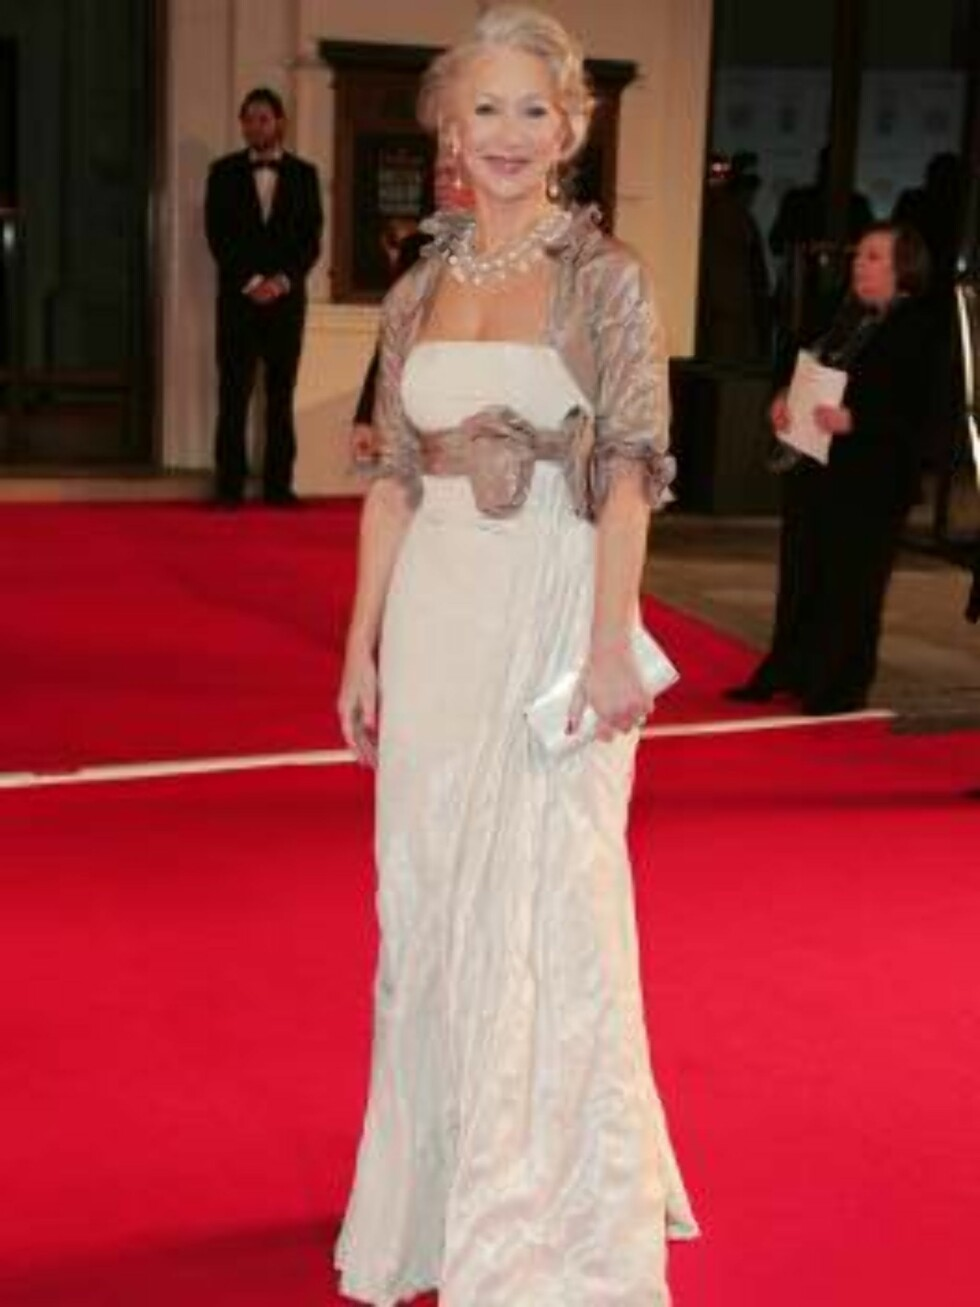 London 2007-02-11  Dame Helen Mirren arriving  at the Orange British Academy Film Awards held at the Royal Opera House in London. Photo:  Axel  Code: 3008  COPYRIGHT STELLA PICTURES Foto: Stella Pictures